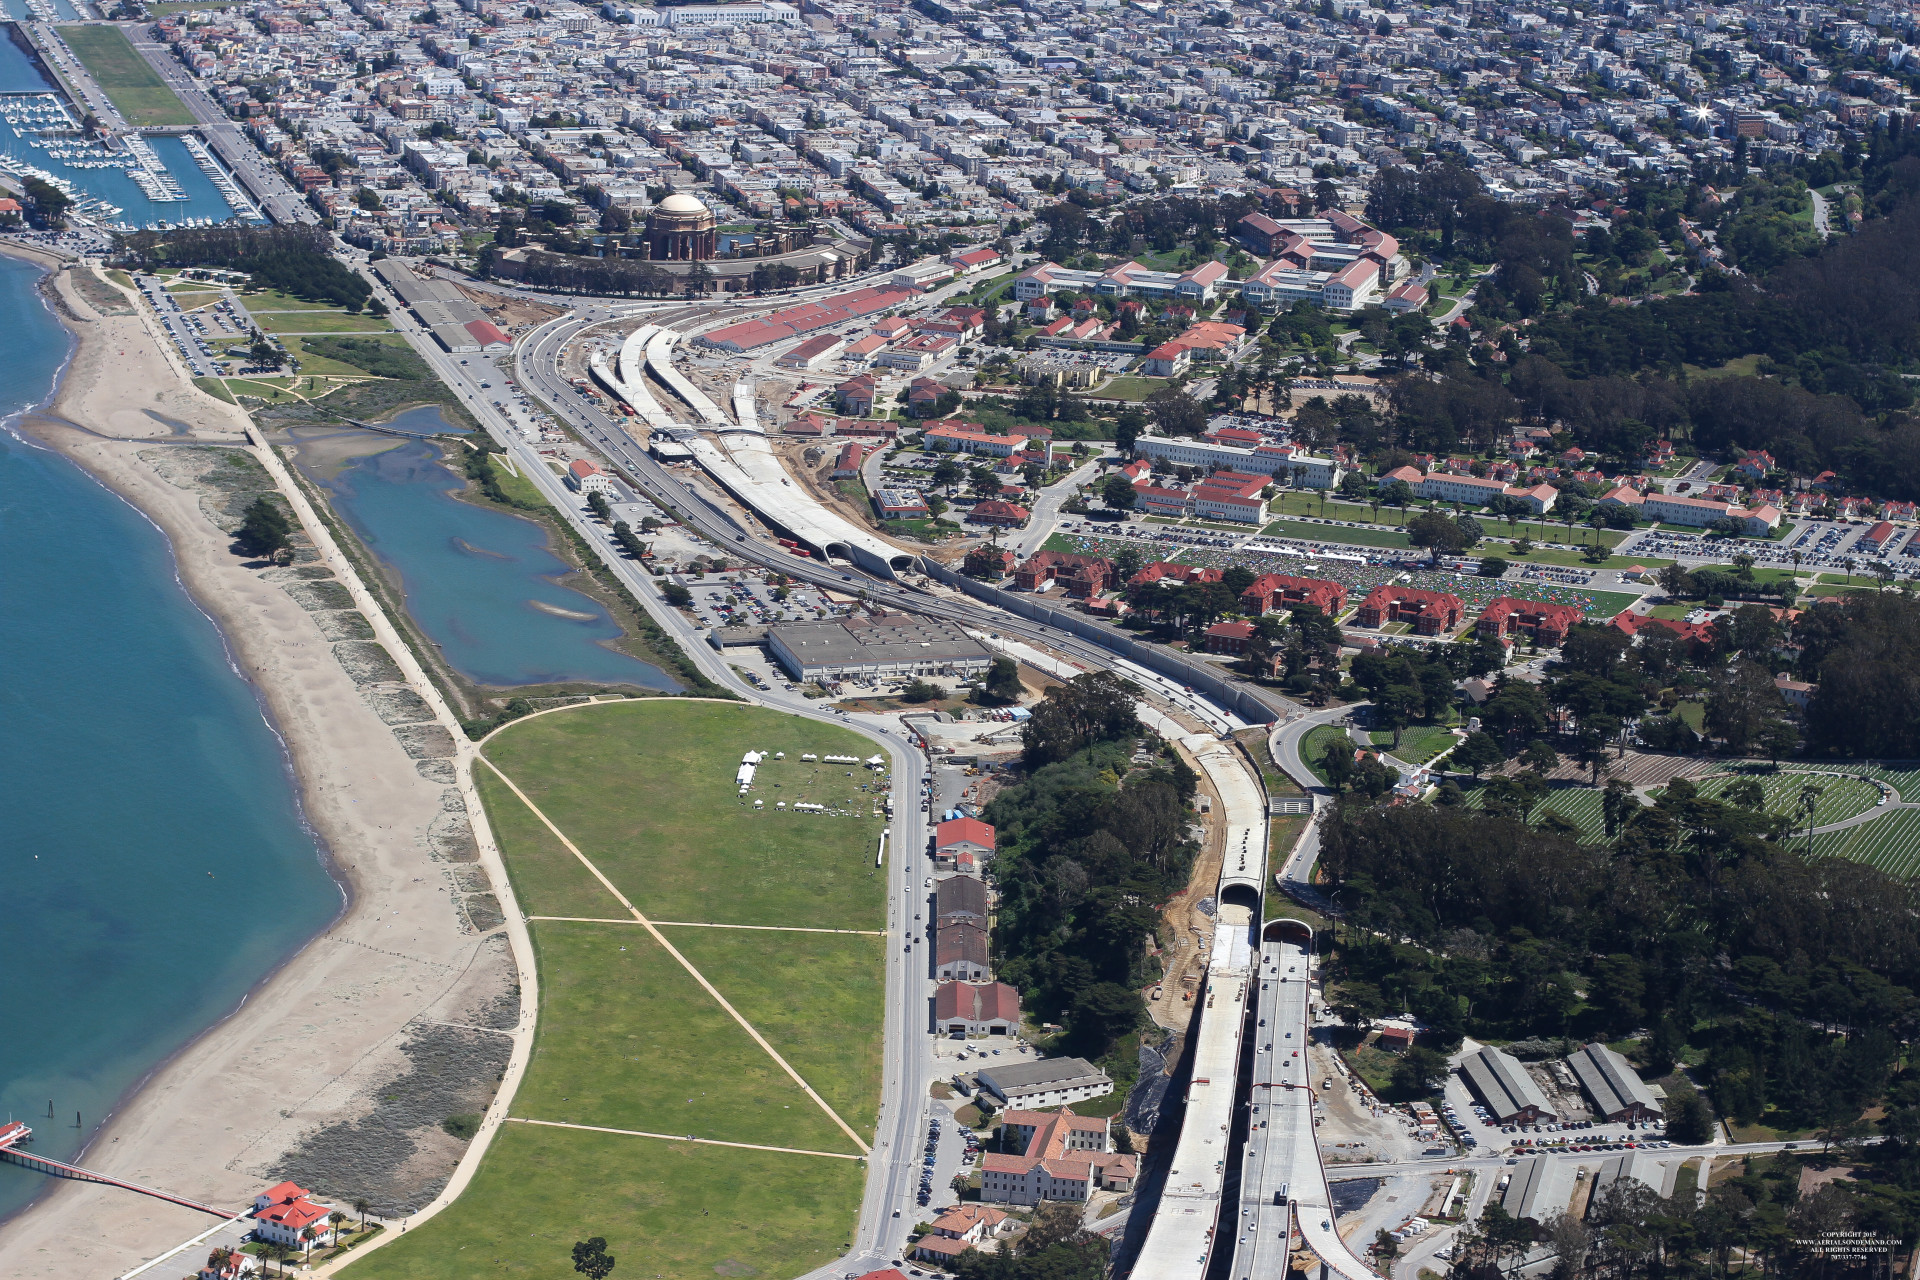 This photograph of the Presidio Parkway Project shows the Battery and Main Post tunnels.